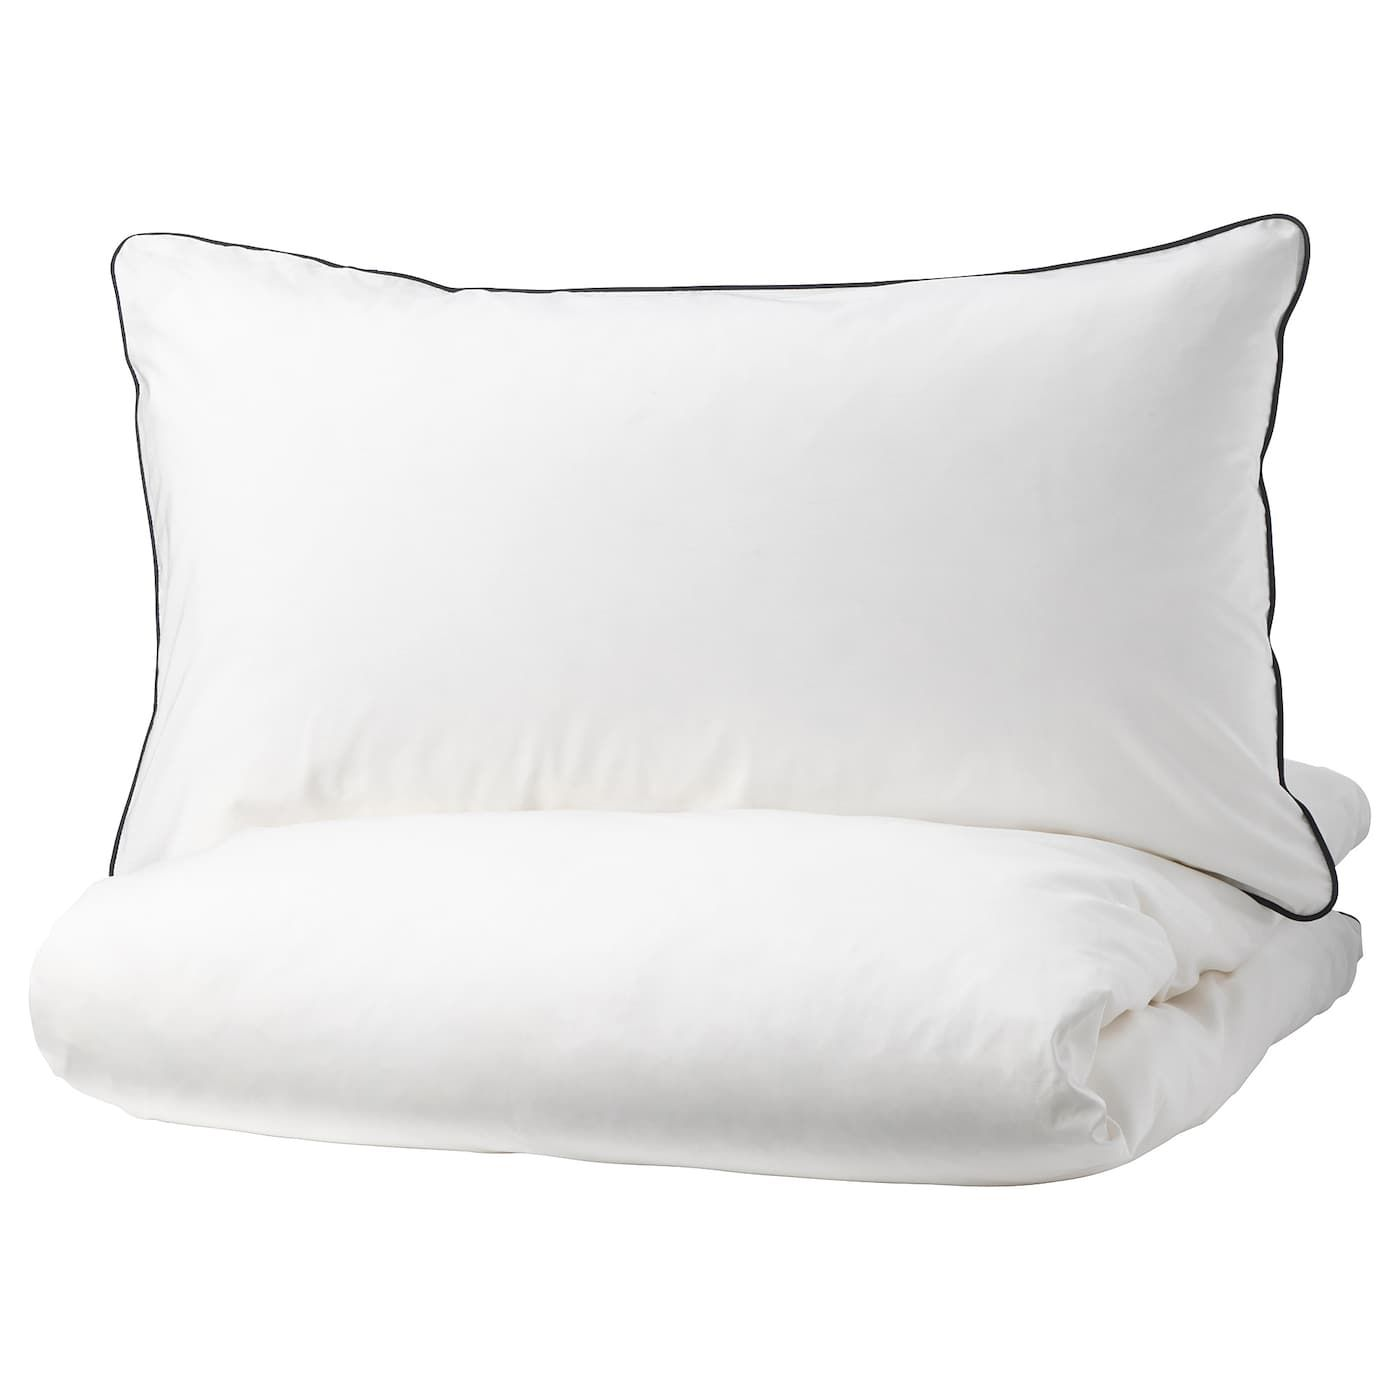 Ikea Kungsblomma Duvet Cover And Pillowcase S White Gray Housse De Couette Draps De Luxe Et Couette